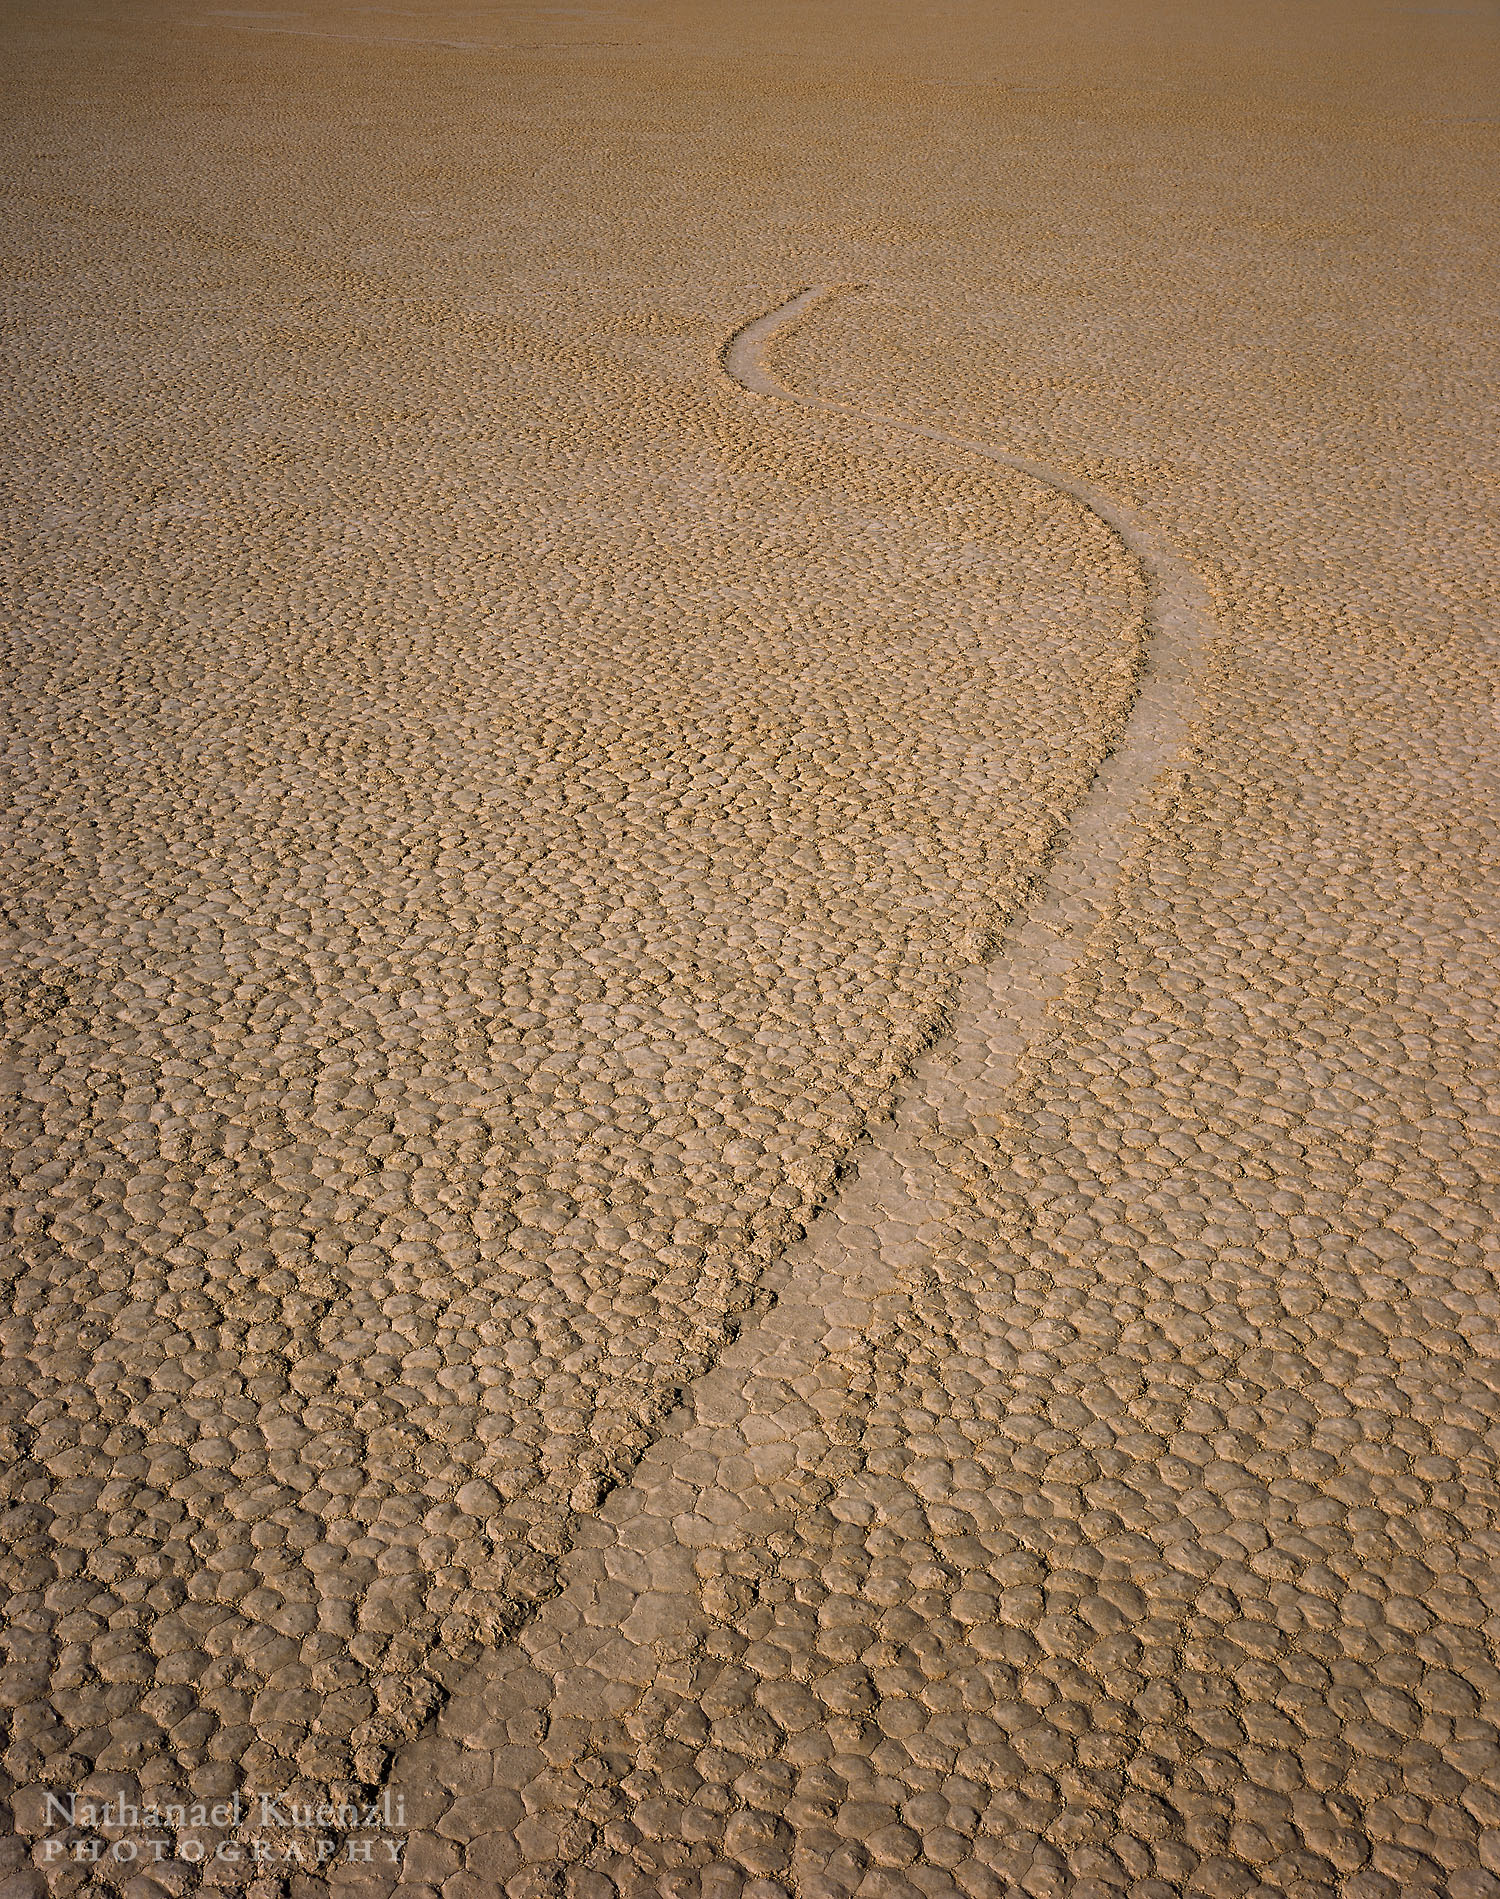 Racetrack Playa Detail, Death Valley National Park, California, April 2008